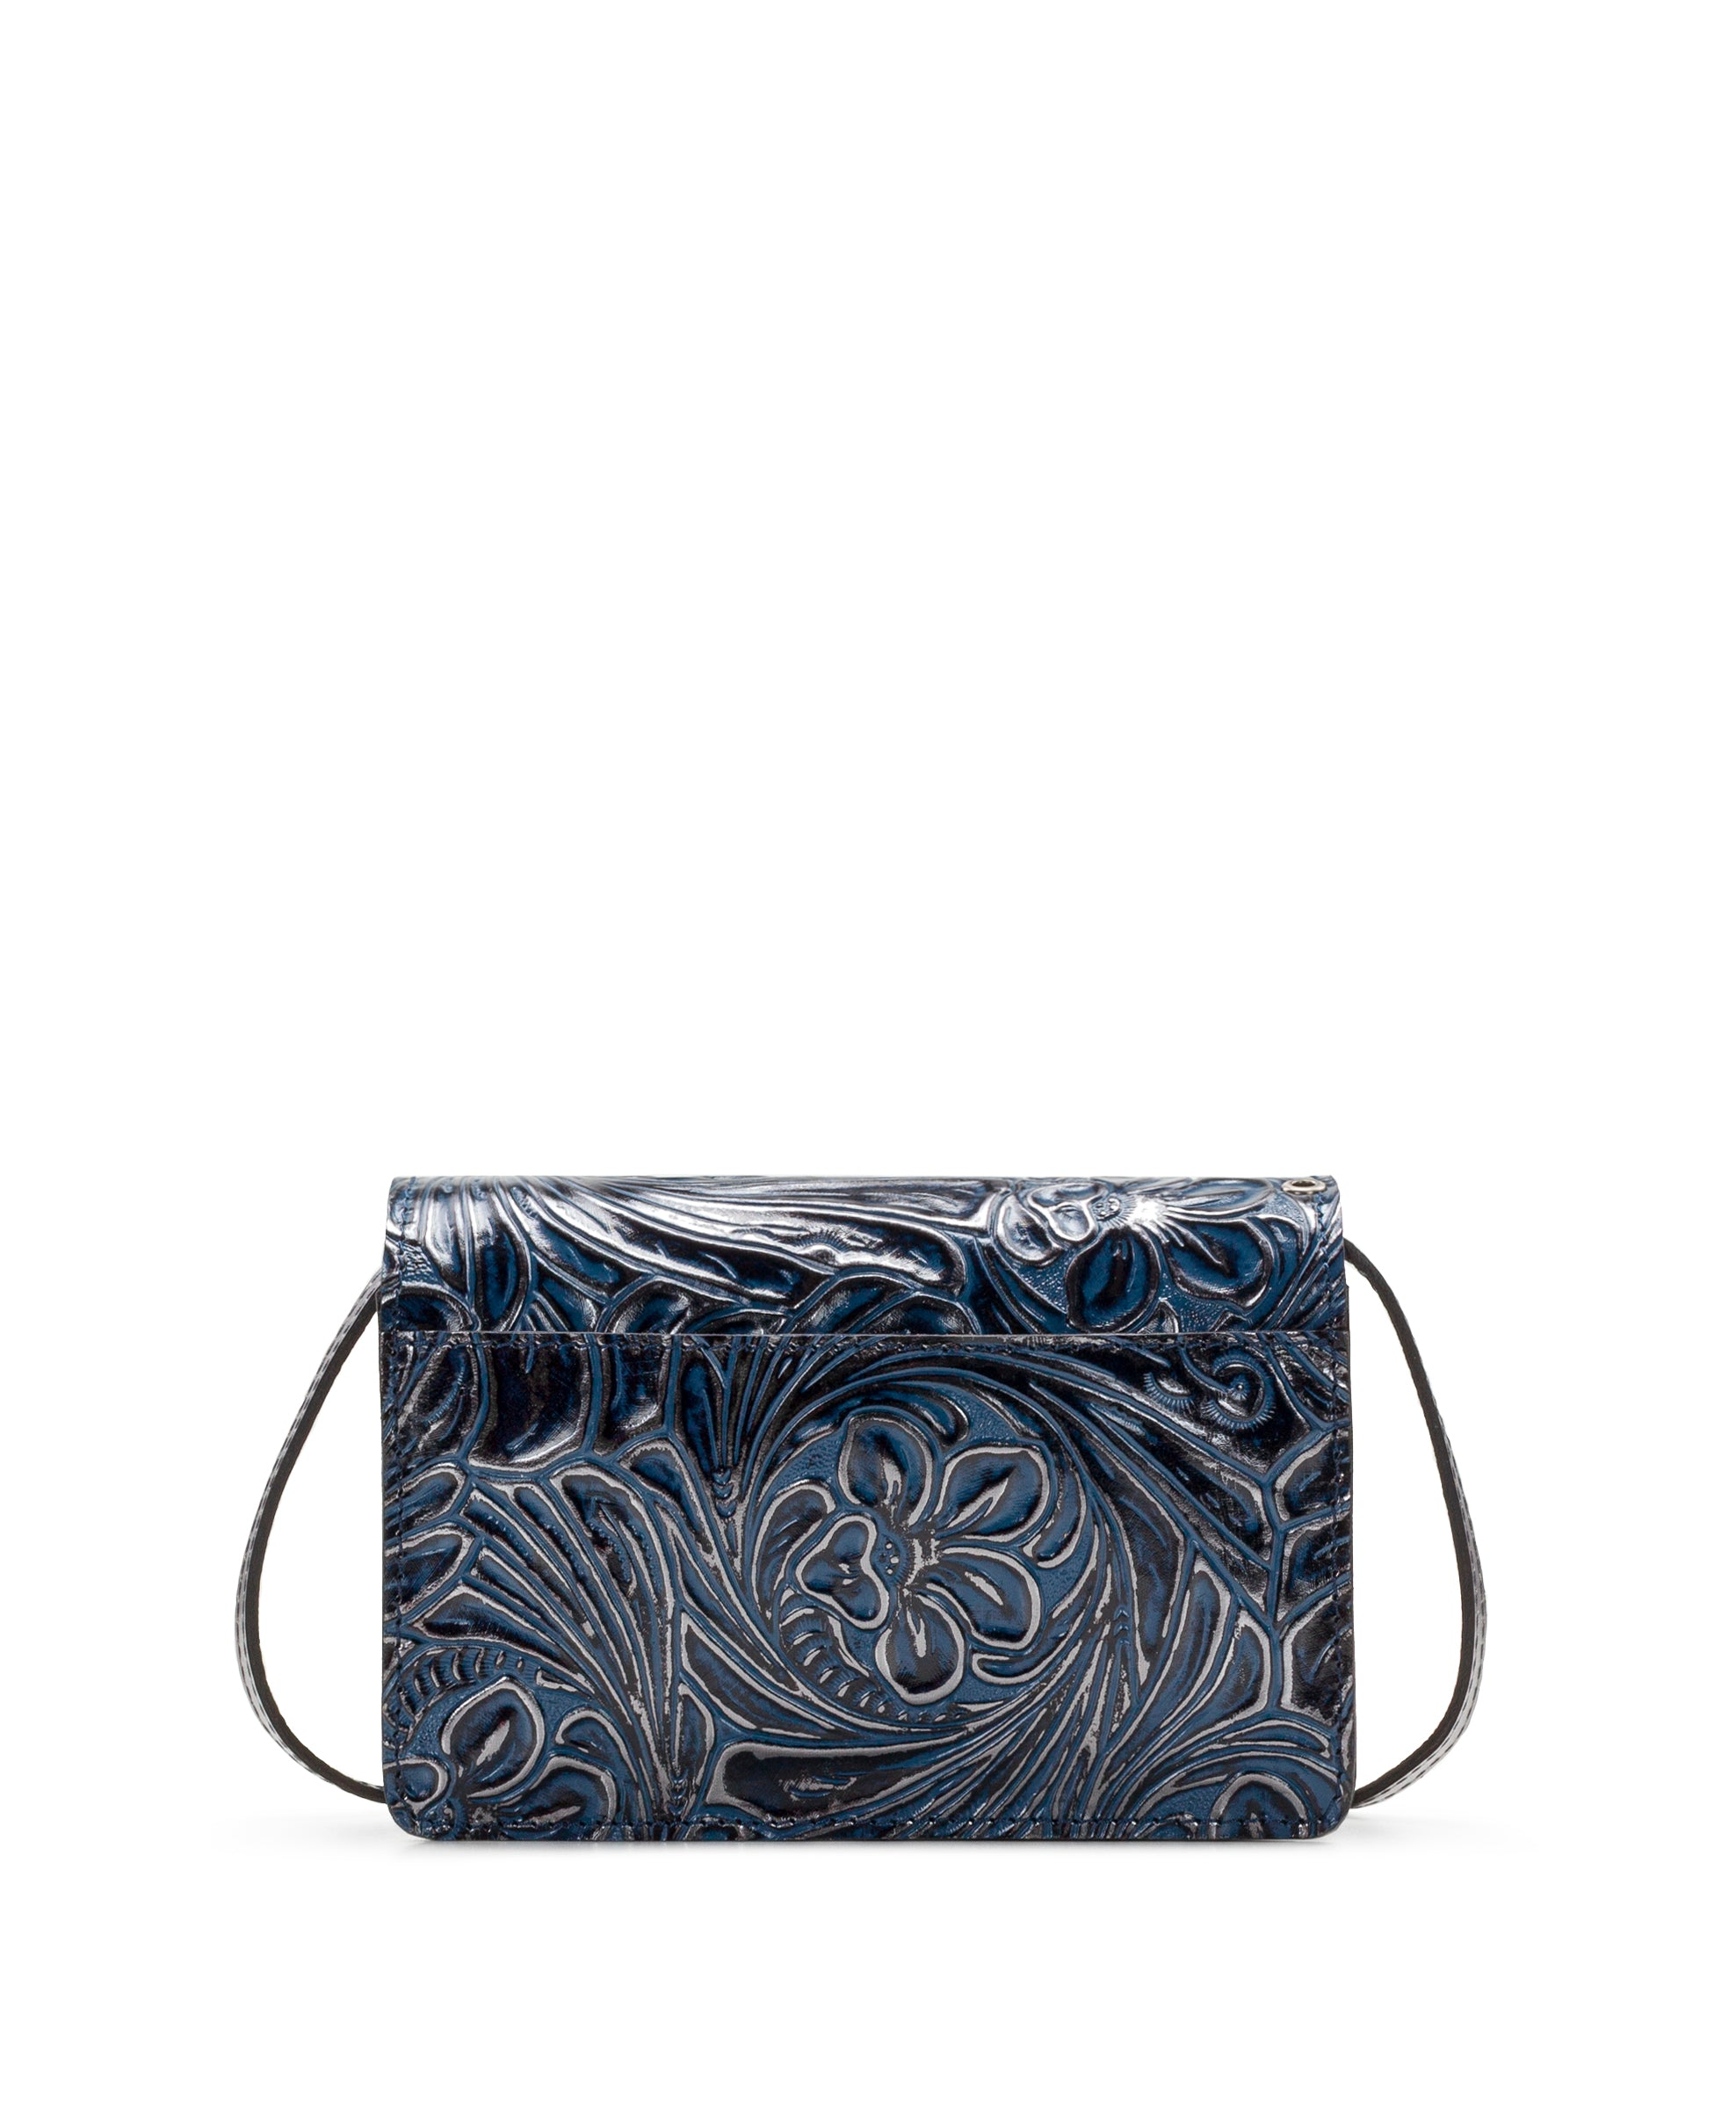 Bianco Crossbody Organizer - Metallic Tobacco Fields Navy 2